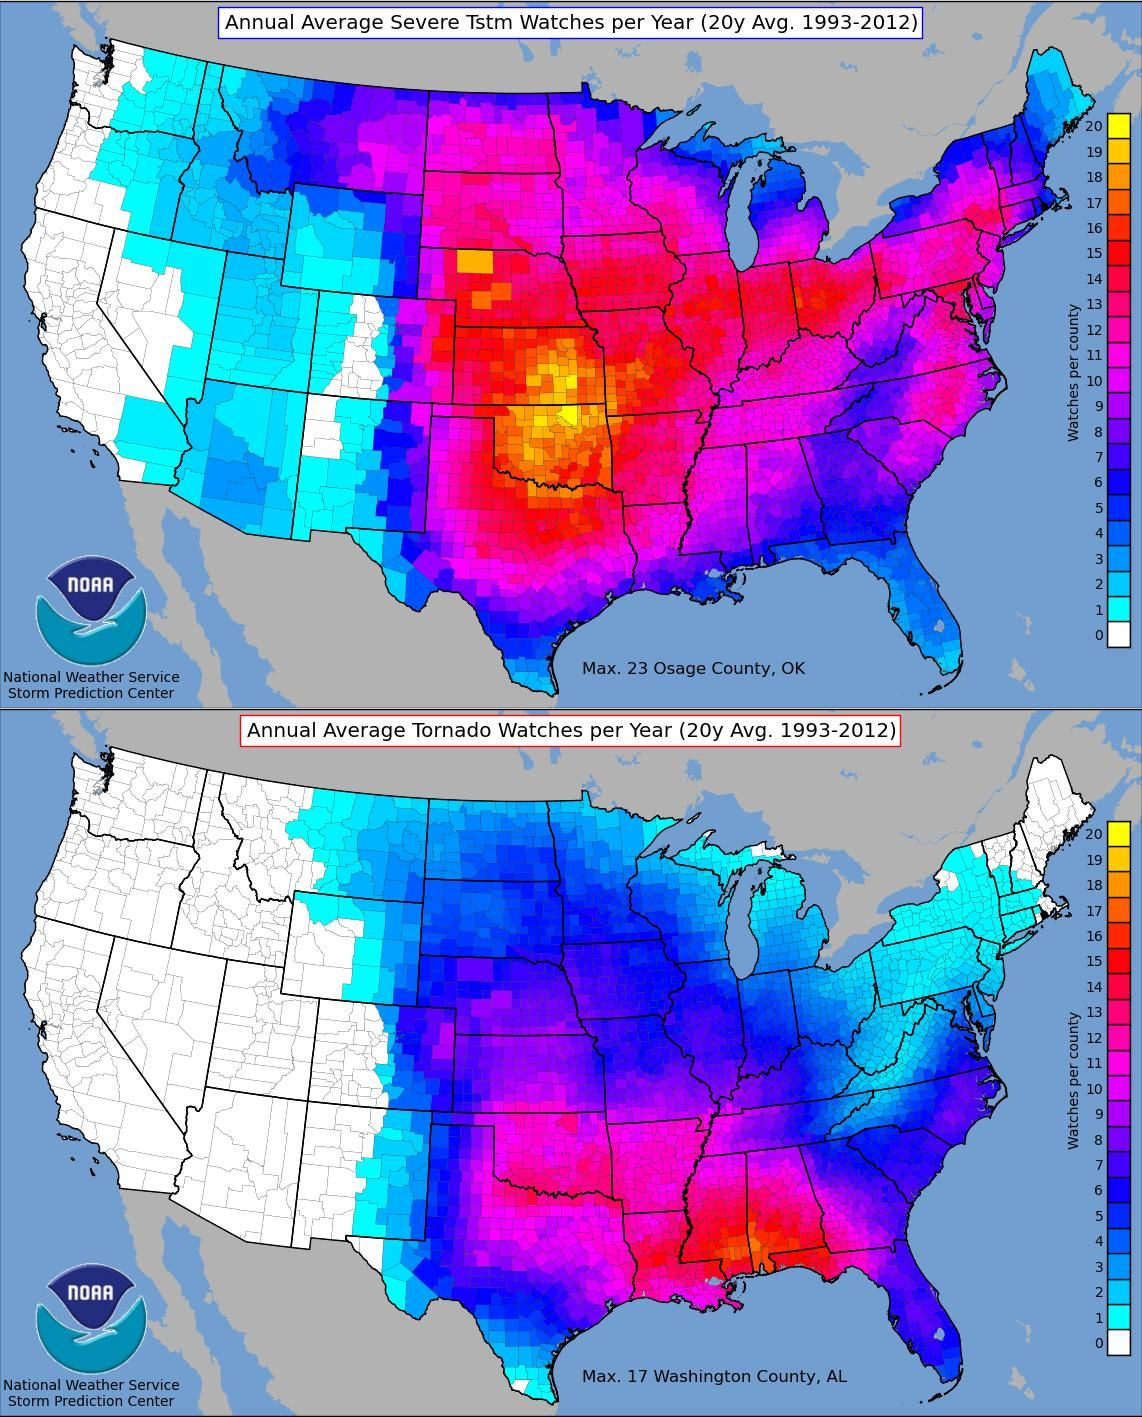 Annual Average Severe Thunderstorm And Tornado Watches Per